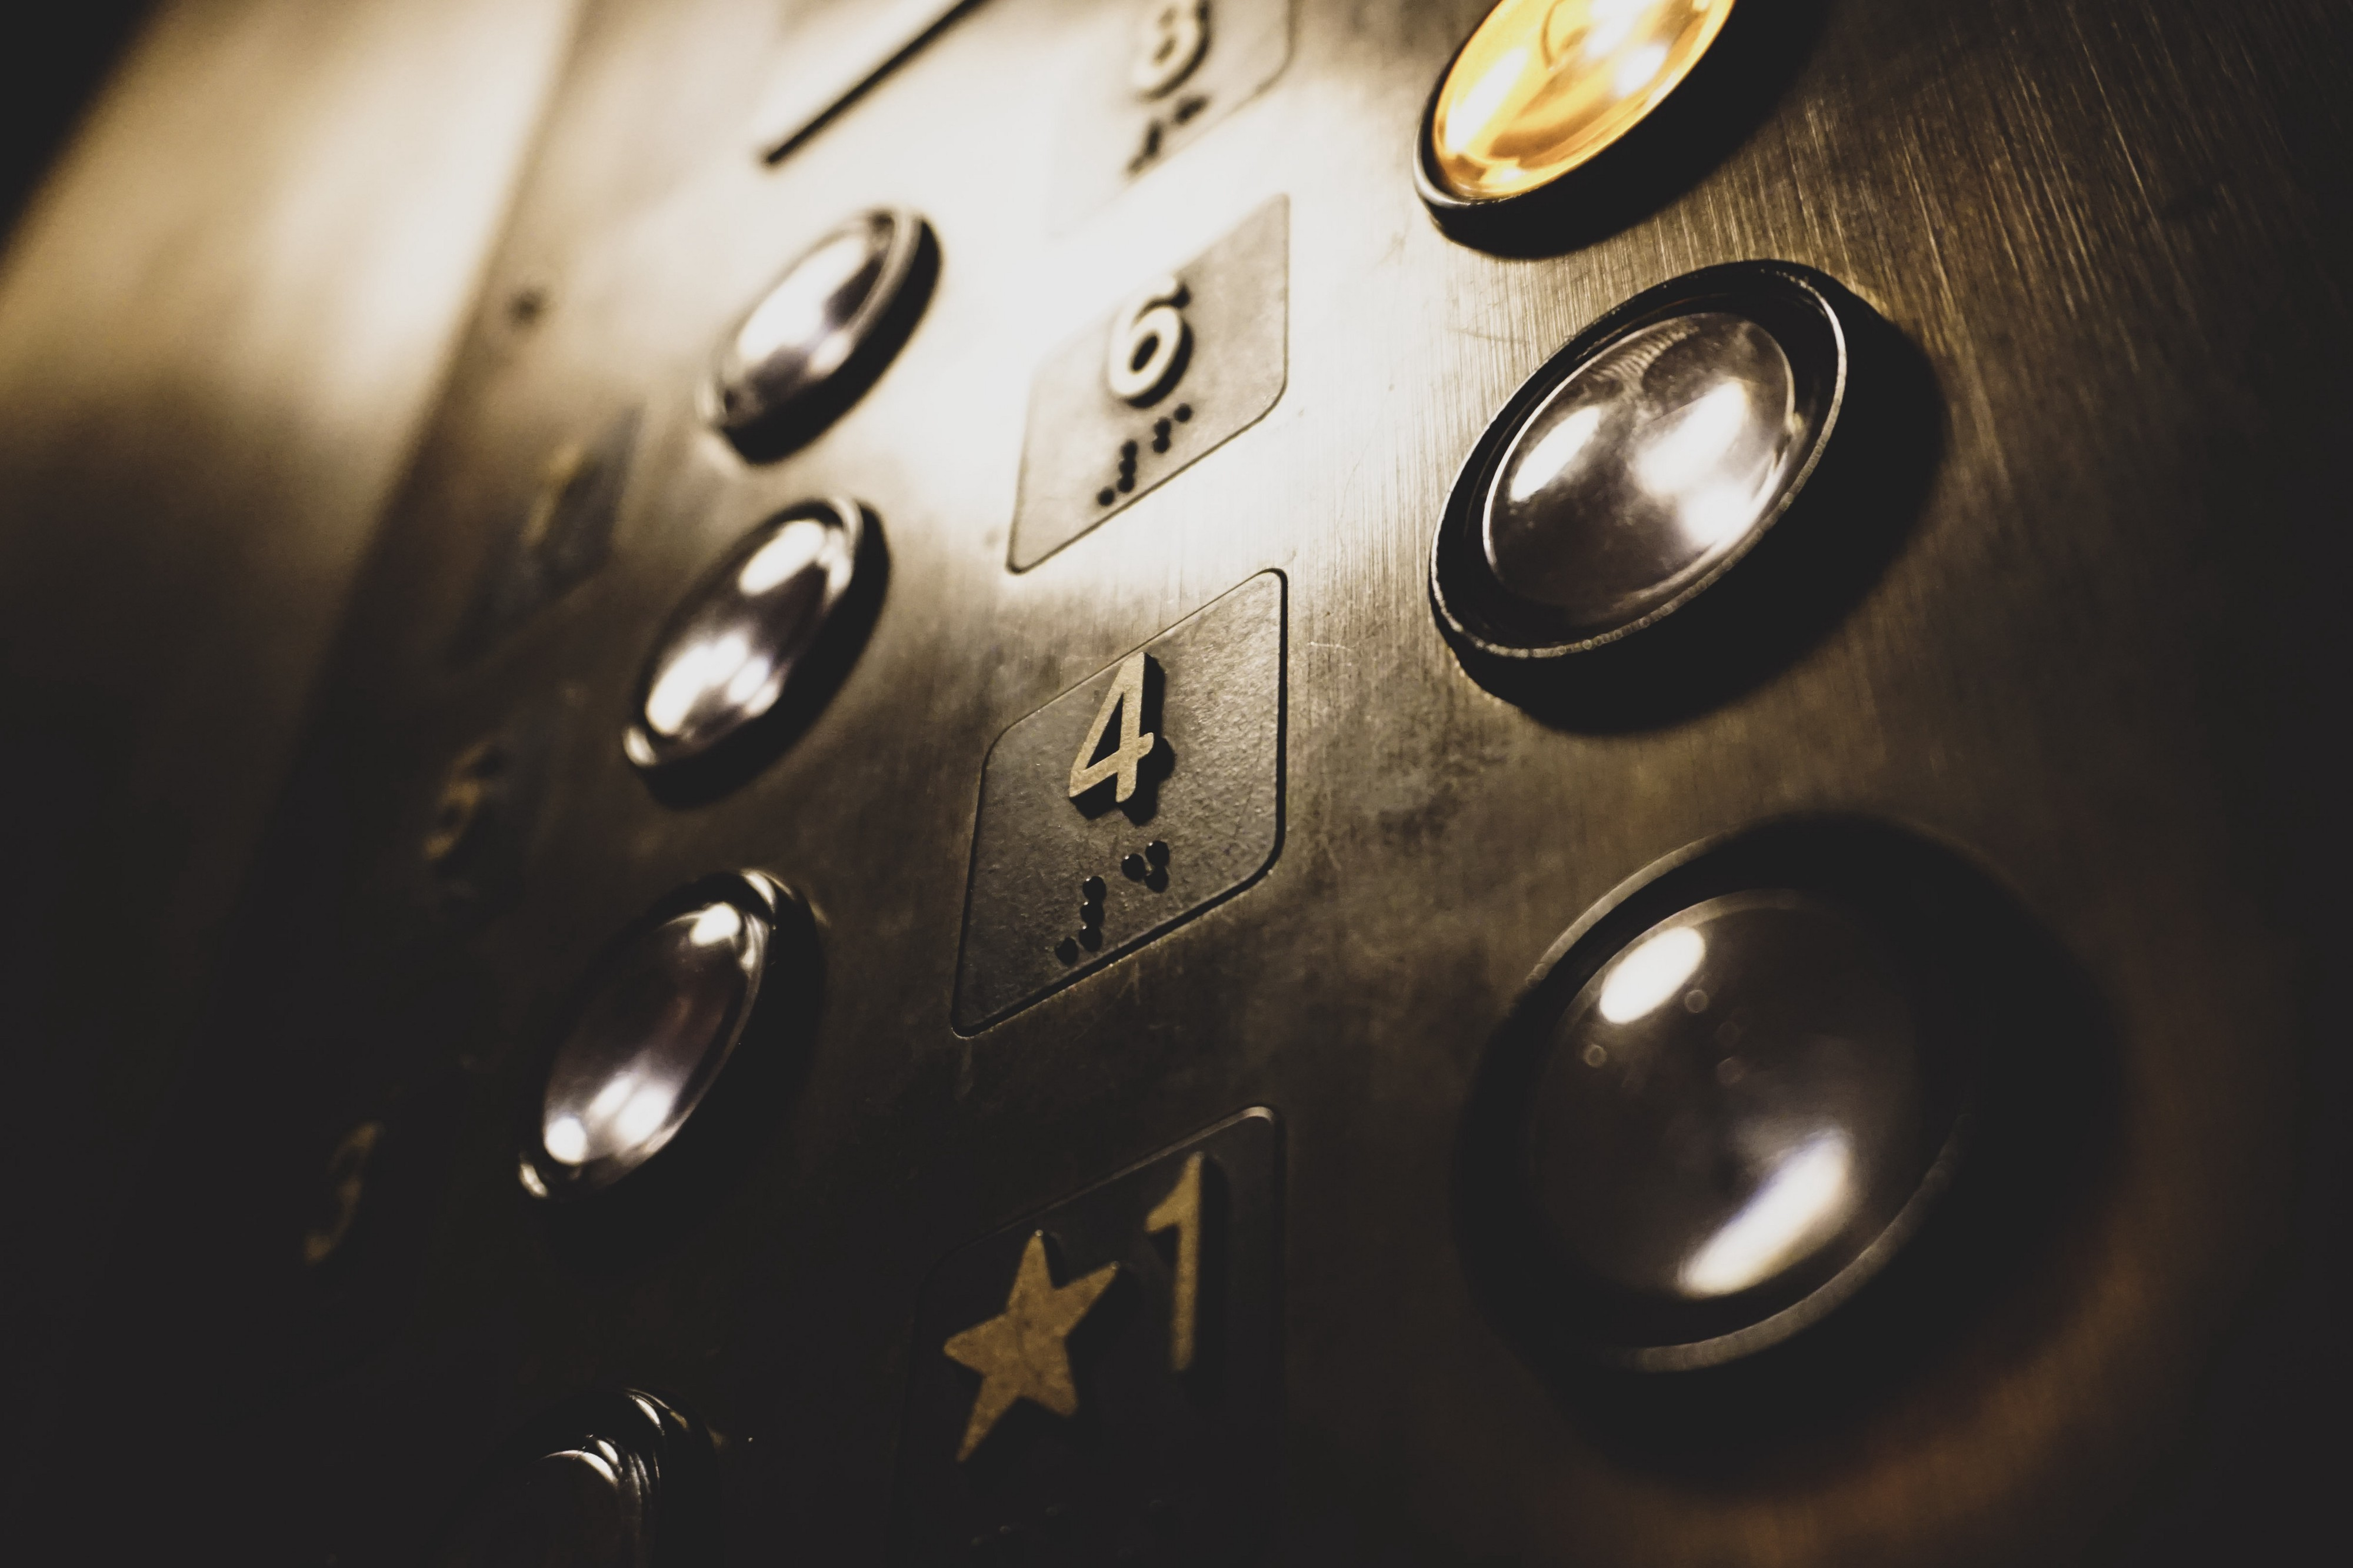 Elevator control panel with numbered buttons